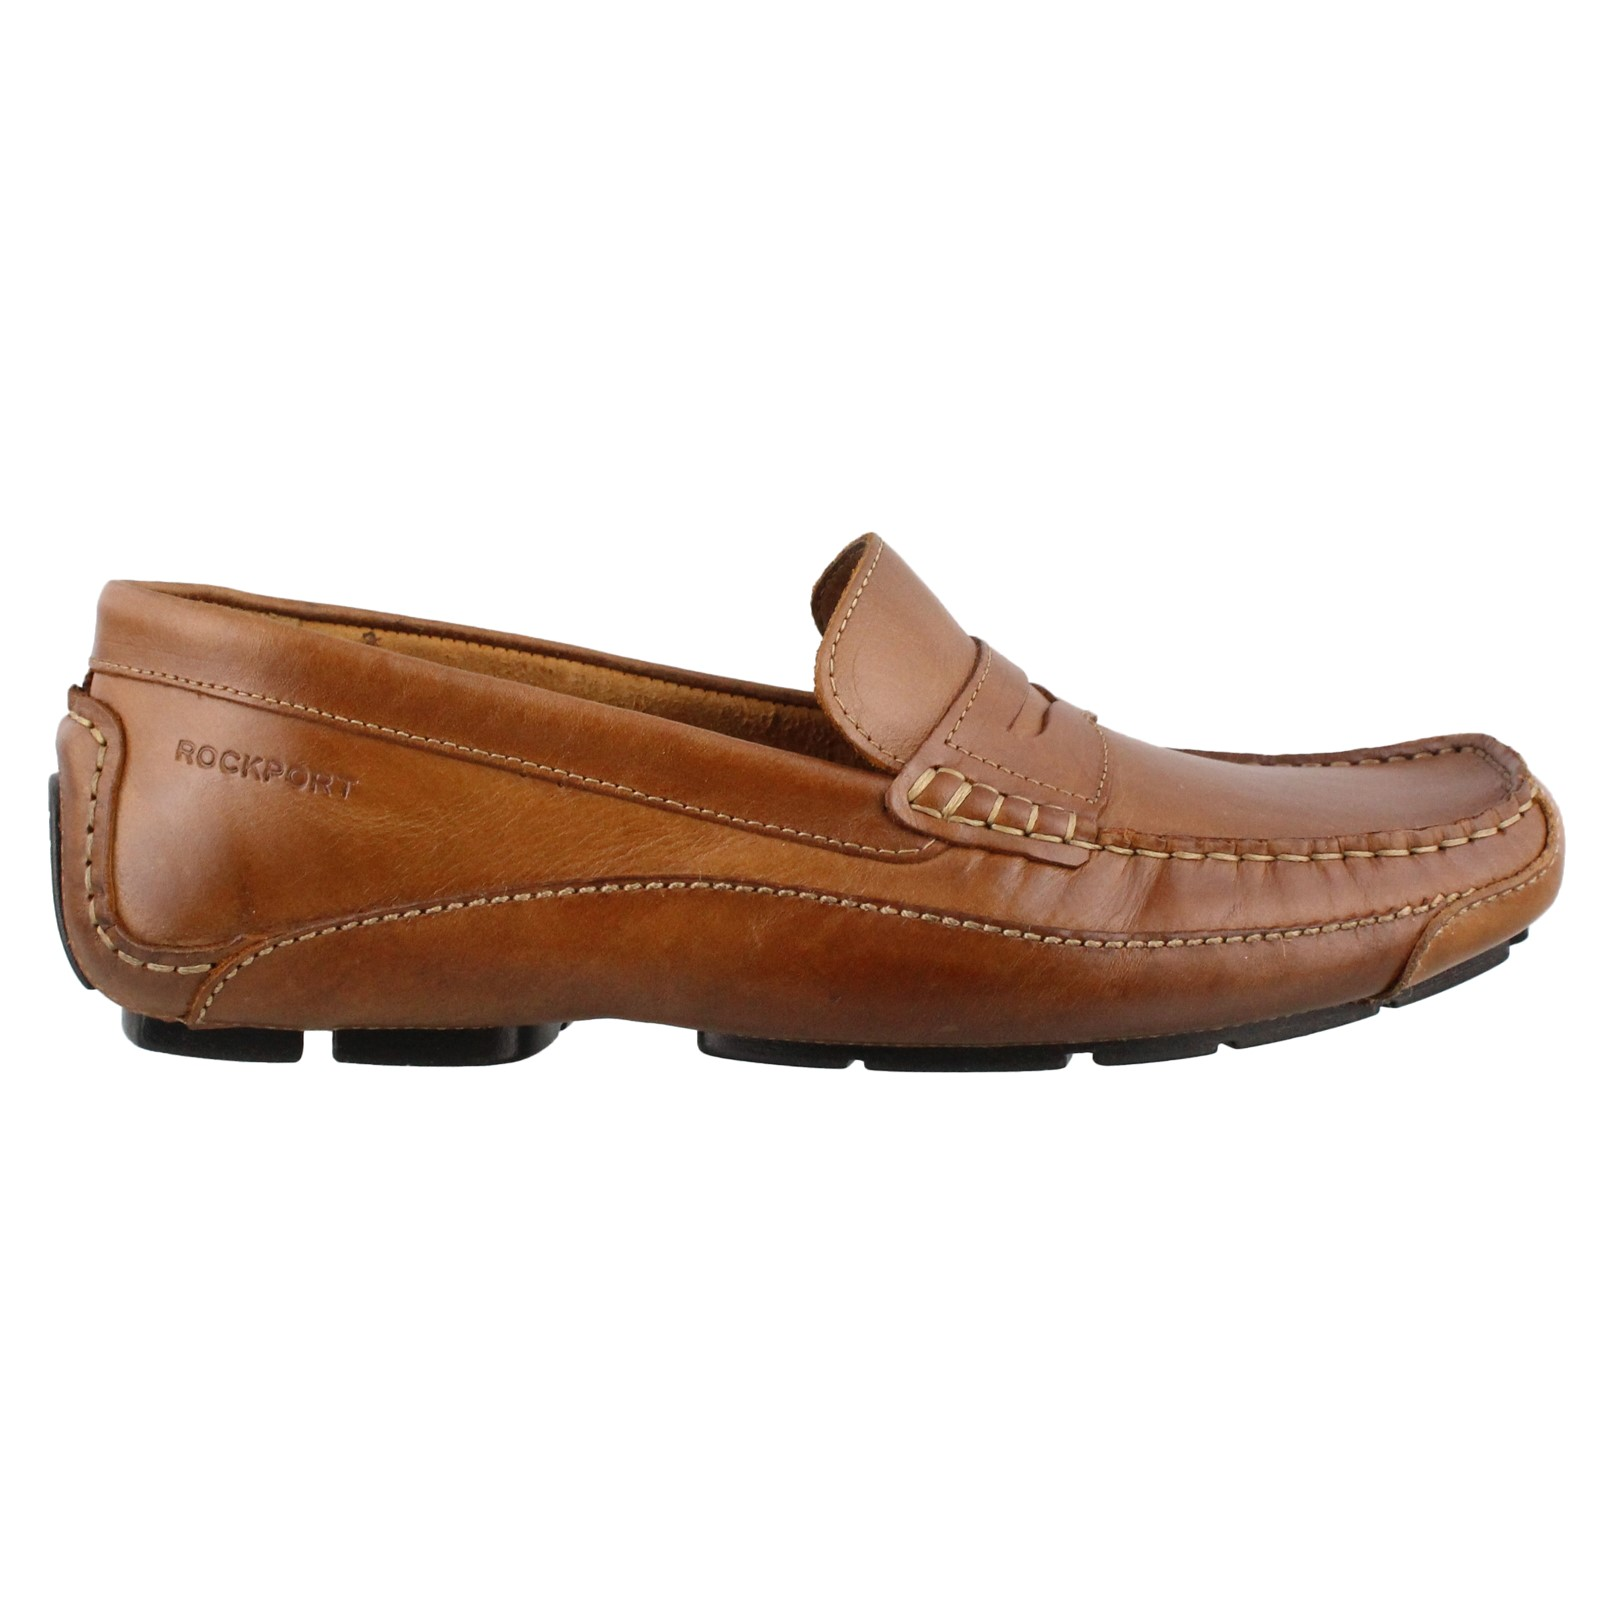 Men's Rockport, Luxury Cruise Penny Loafer